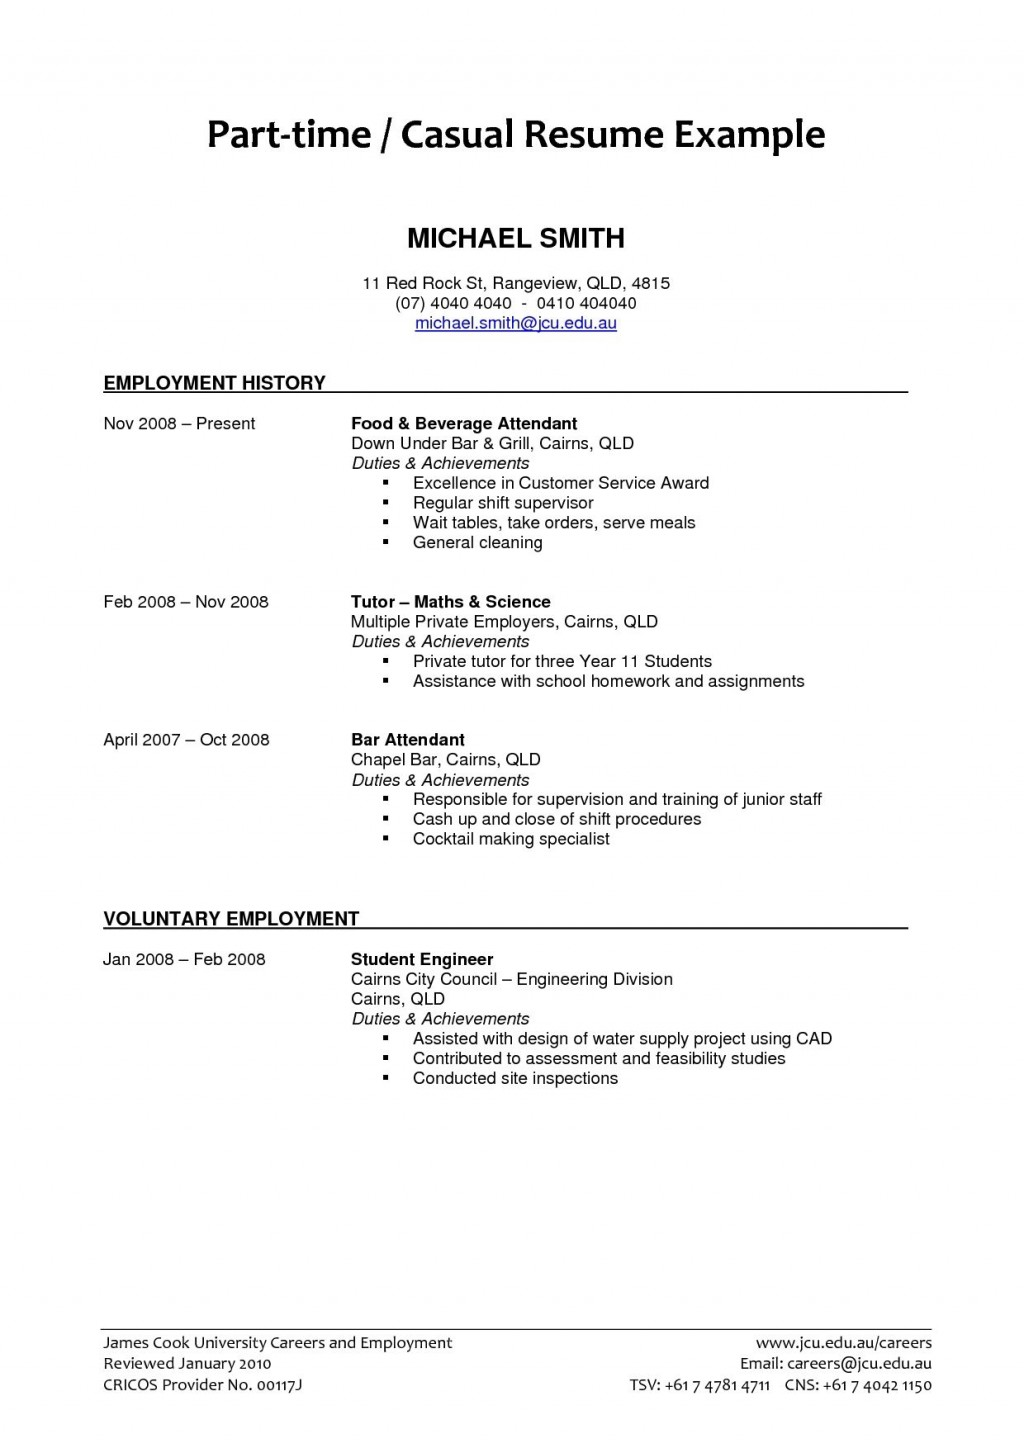 004 Unbelievable Part Time Job Resume Template Example  Student SummaryLarge